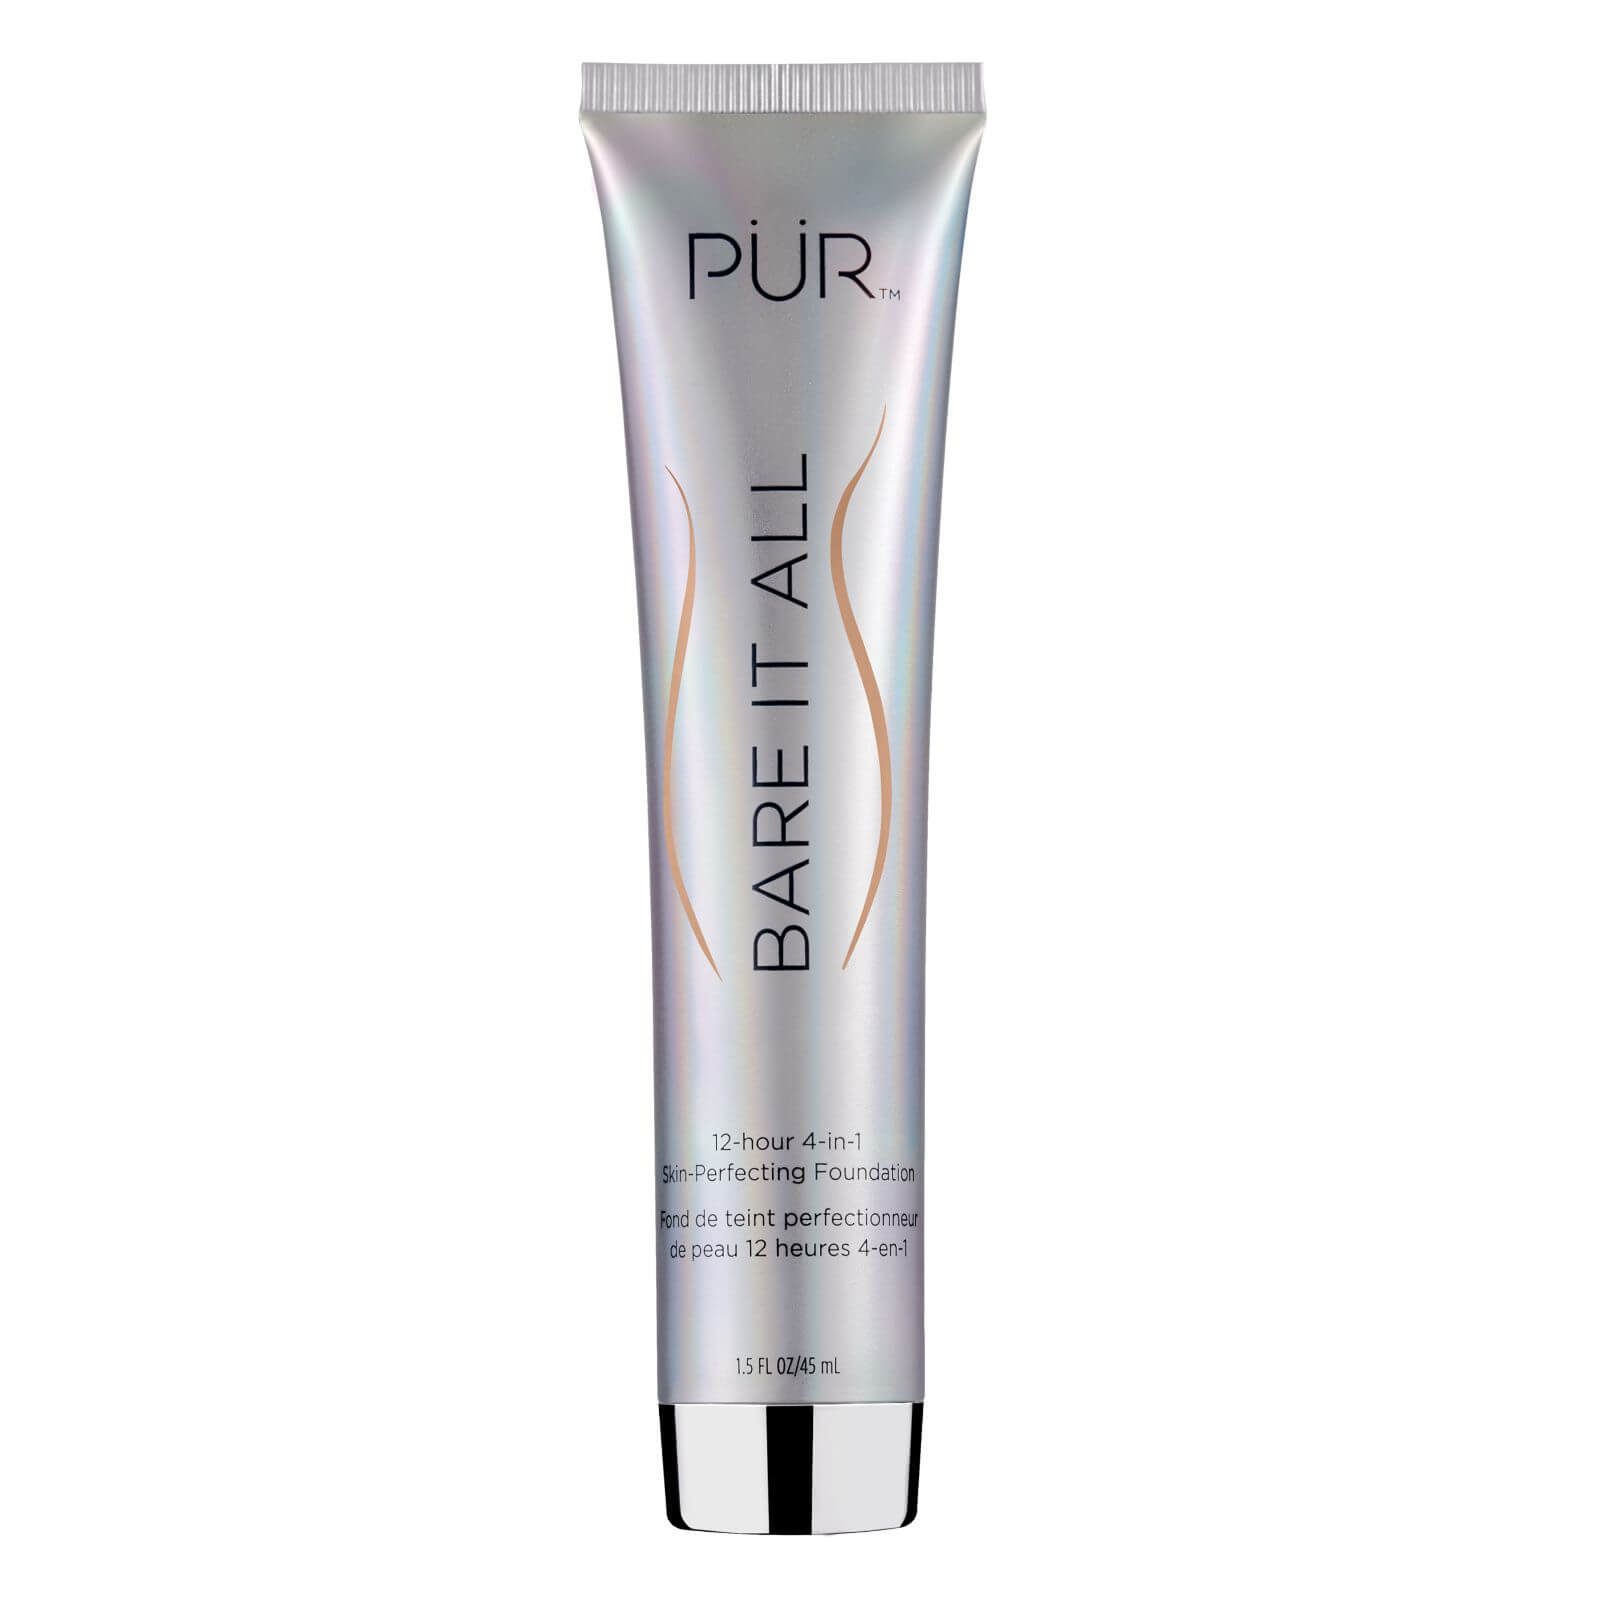 PÜR Bare It All 4-in-1 Skin Perfecting Foundation 45ml (Various Shades) - Golden Medium